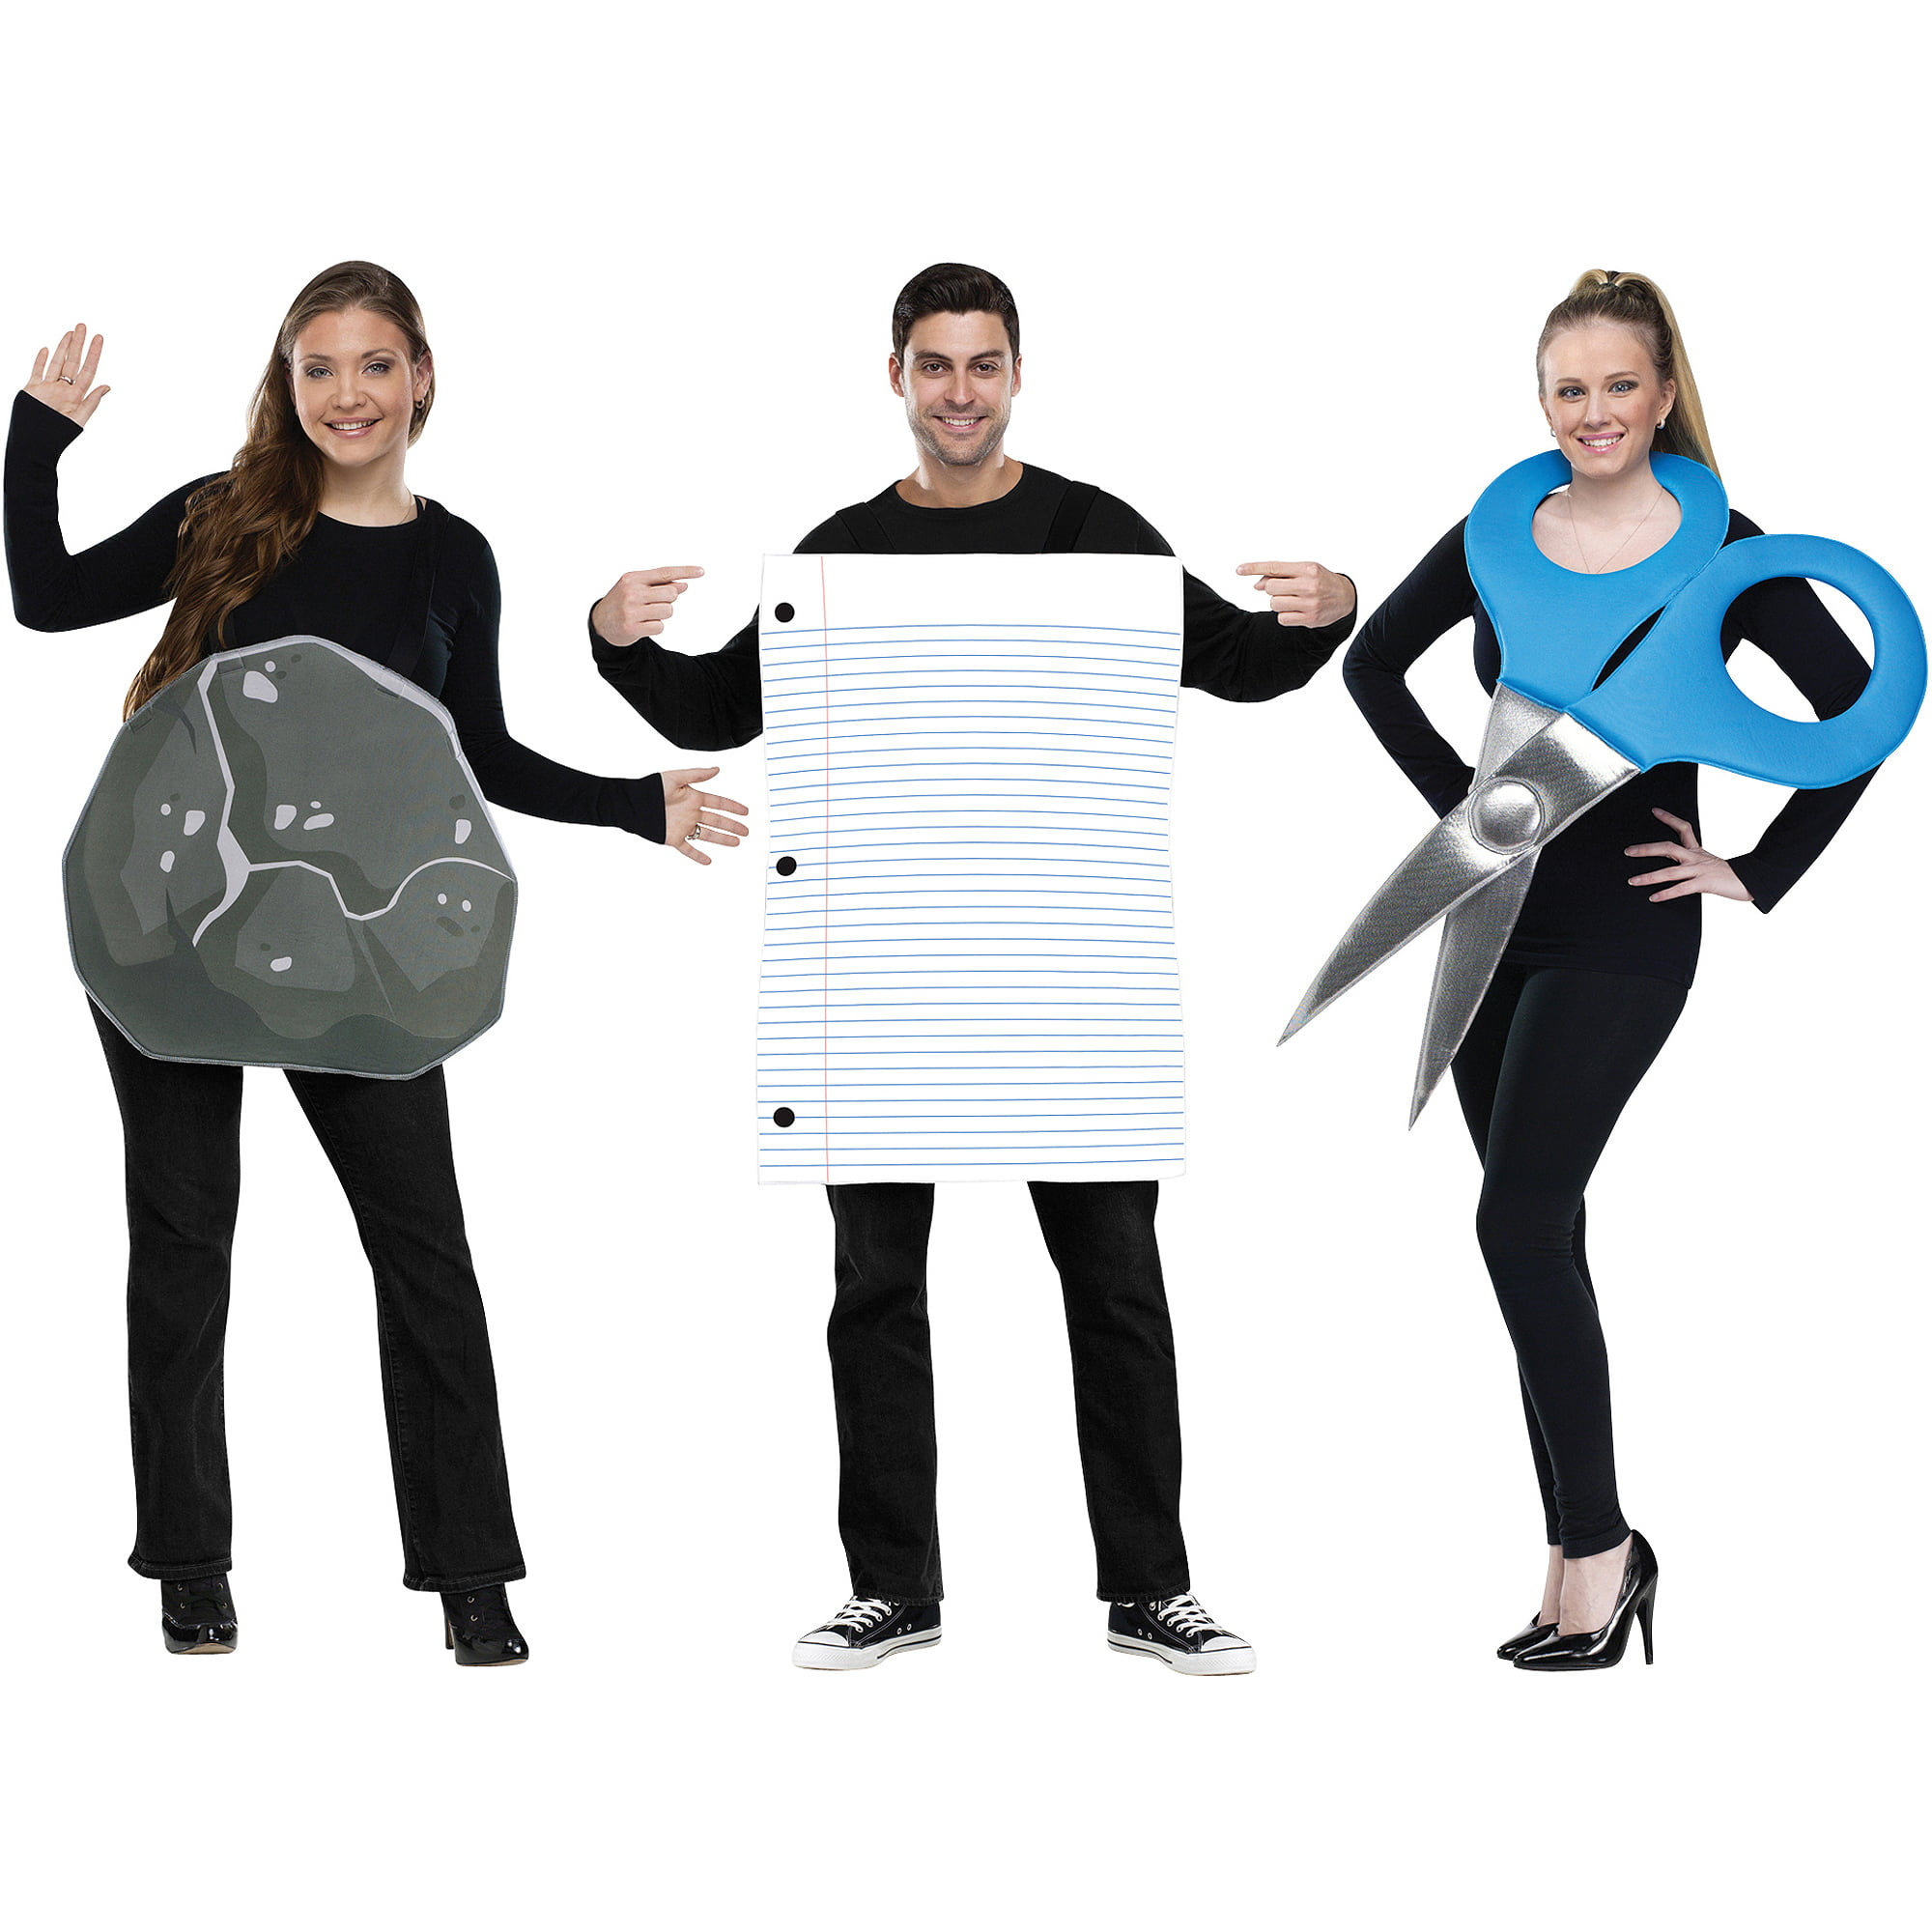 rock paper scissors adult halloween costume walmartcom - Walmart Halloween Costumes For Baby